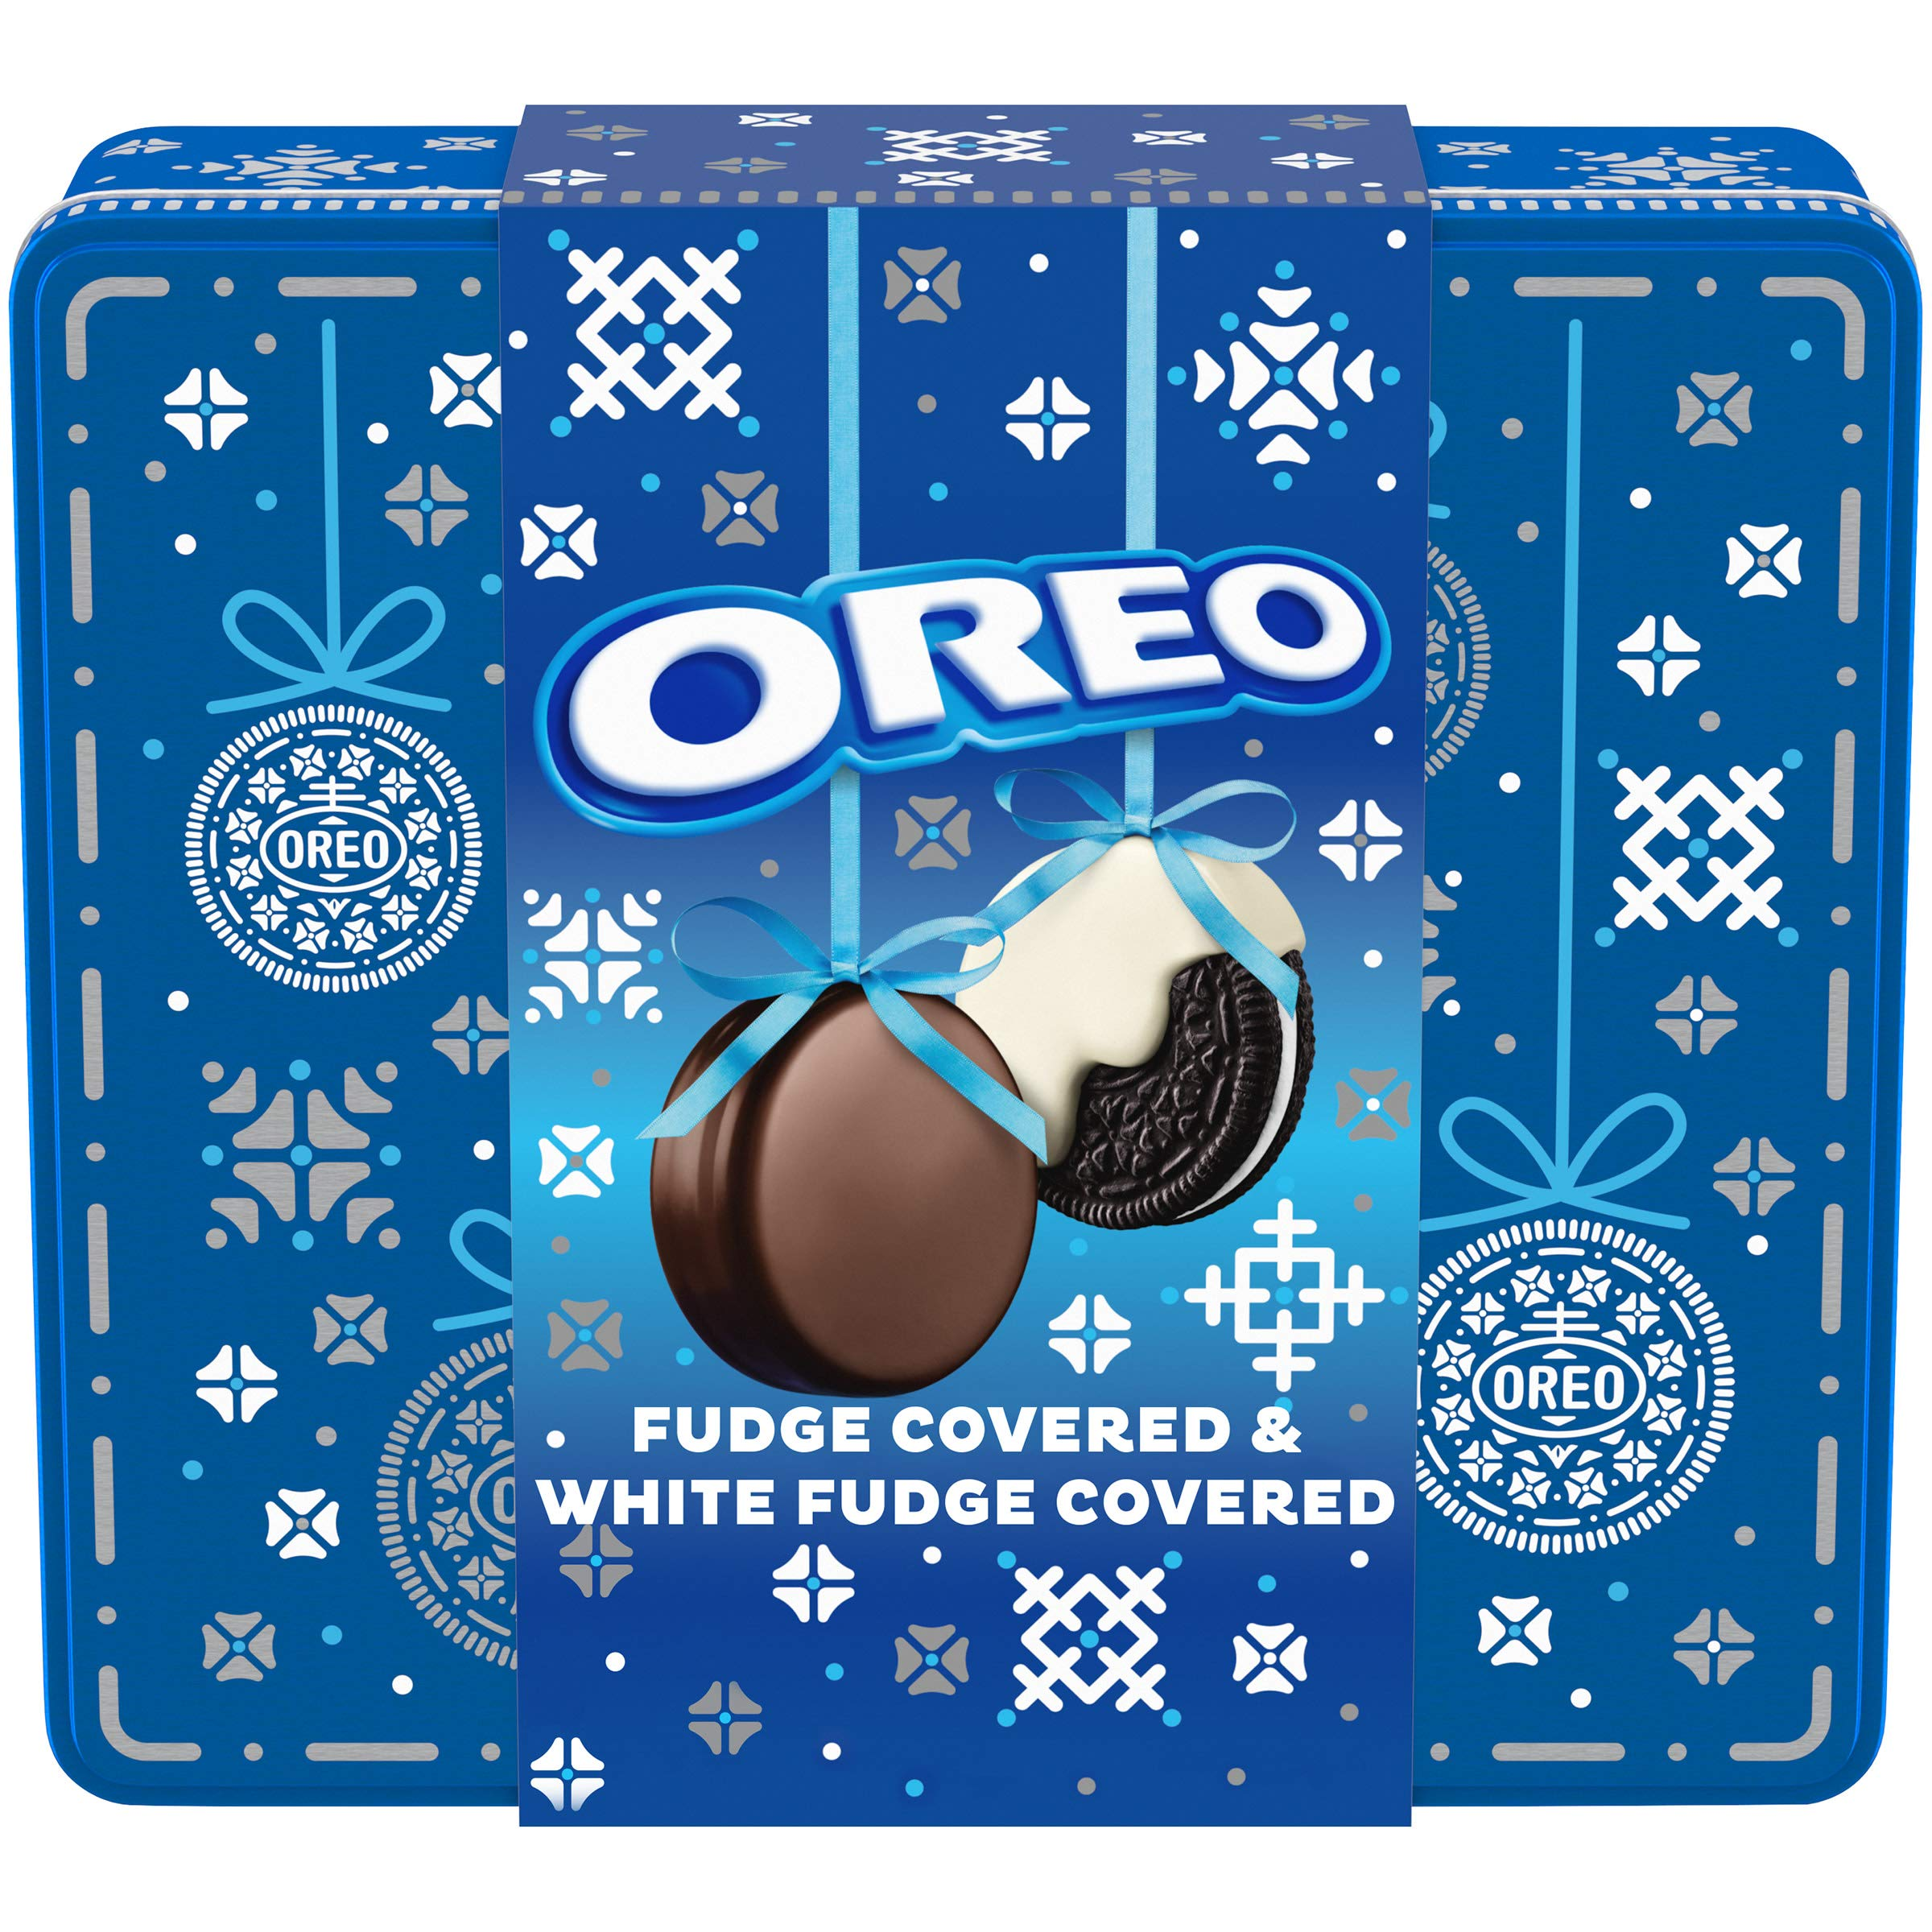 Oreo and Chocolate Sandwich Cookies Creme 24 Cookies Total, Original Flavor Crème Fudge & White Fudge Covered Holiday Gift Tin, 16.1 Ounce, (Pack of 8)